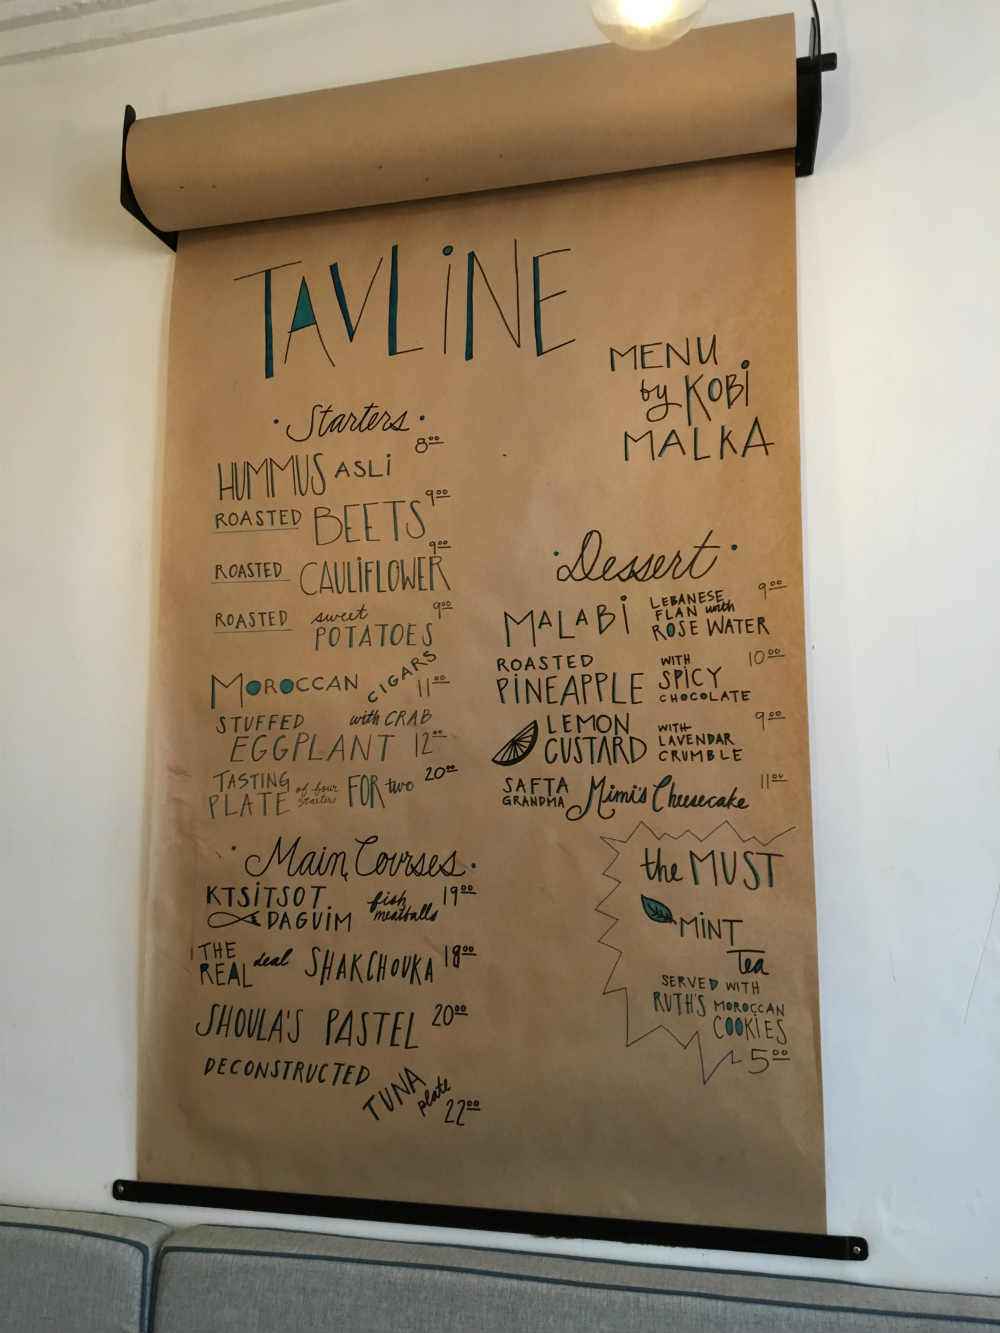 Resto Dans Paris Resto Tavline Paris 75004 Familin Paris